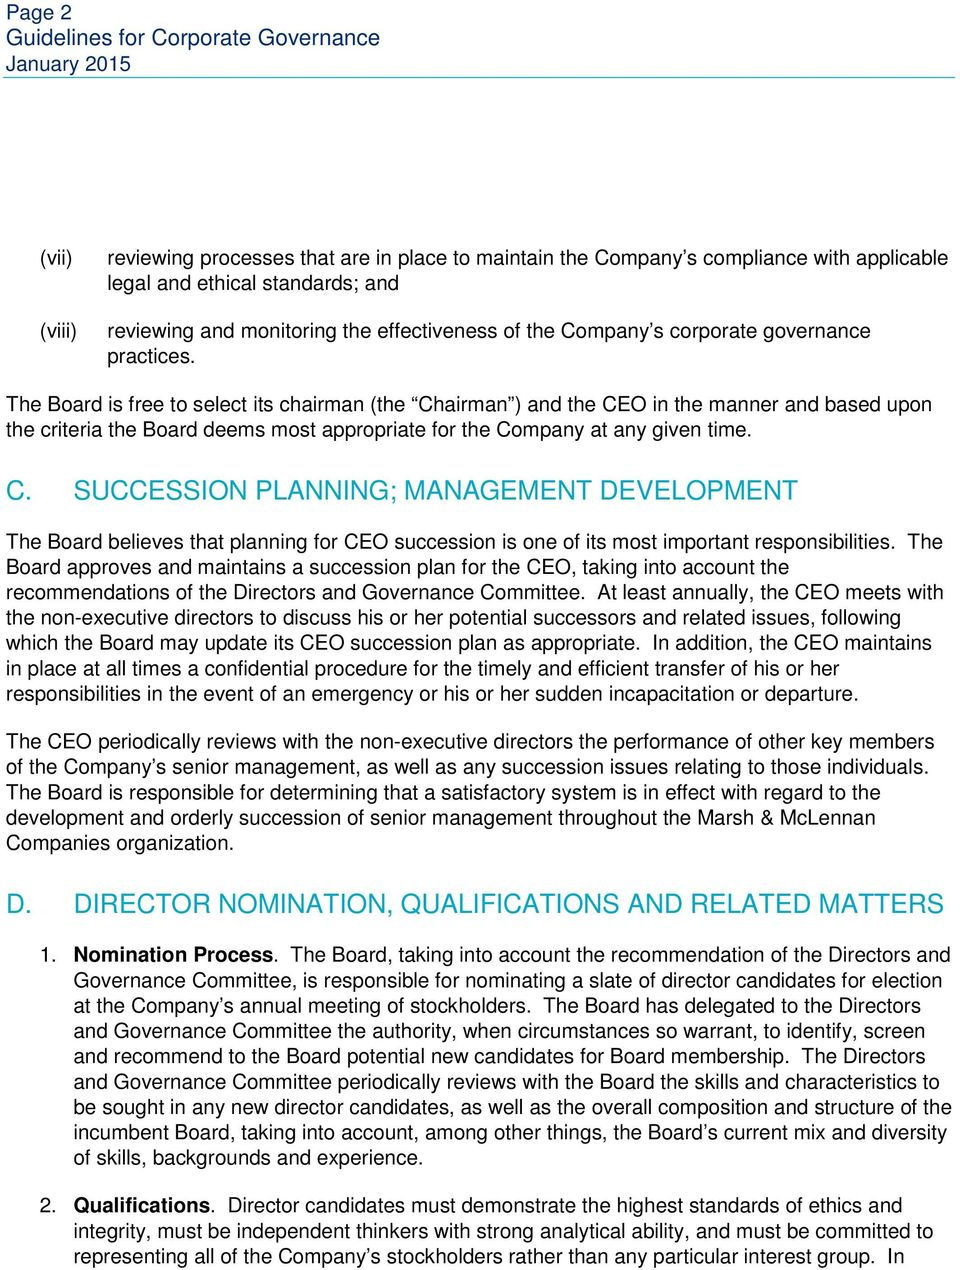 The Board is free to select its chairman (the Chairman ) and the CEO in the manner and based upon the criteria the Board deems most appropriate for the Company at any given time. C. SUCCESSION PLANNING; MANAGEMENT DEVELOPMENT The Board believes that planning for CEO succession is one of its most important responsibilities.